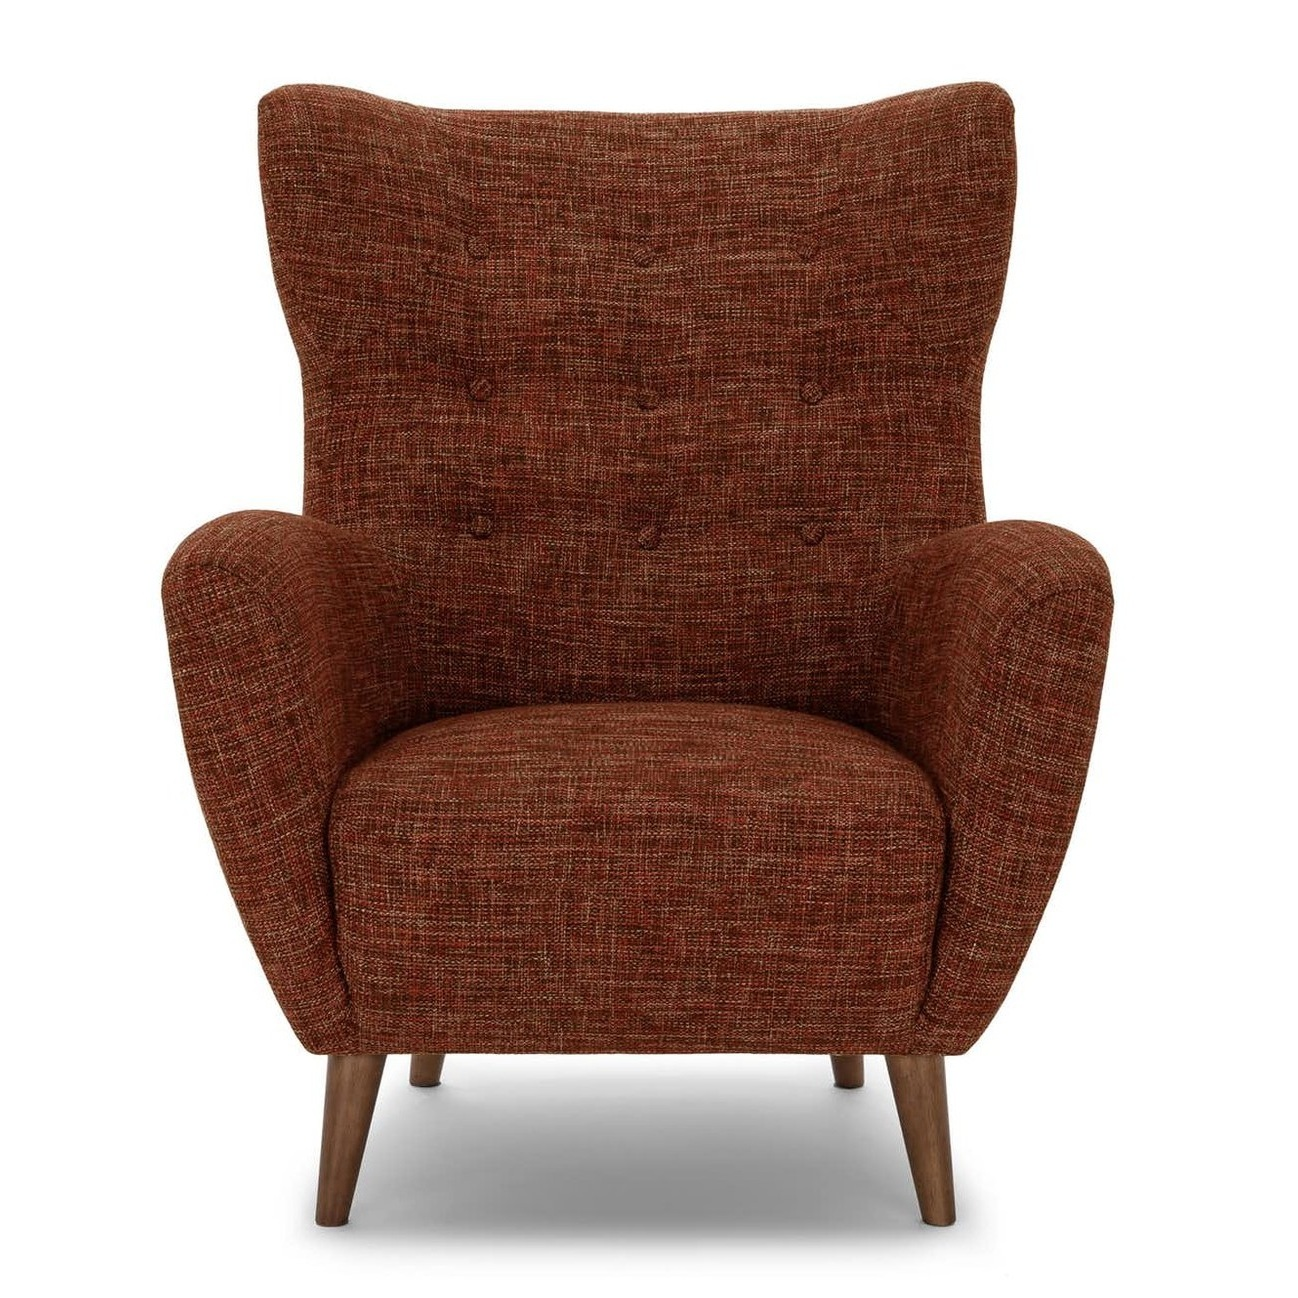 Article | Mod Chair in Orange Spice